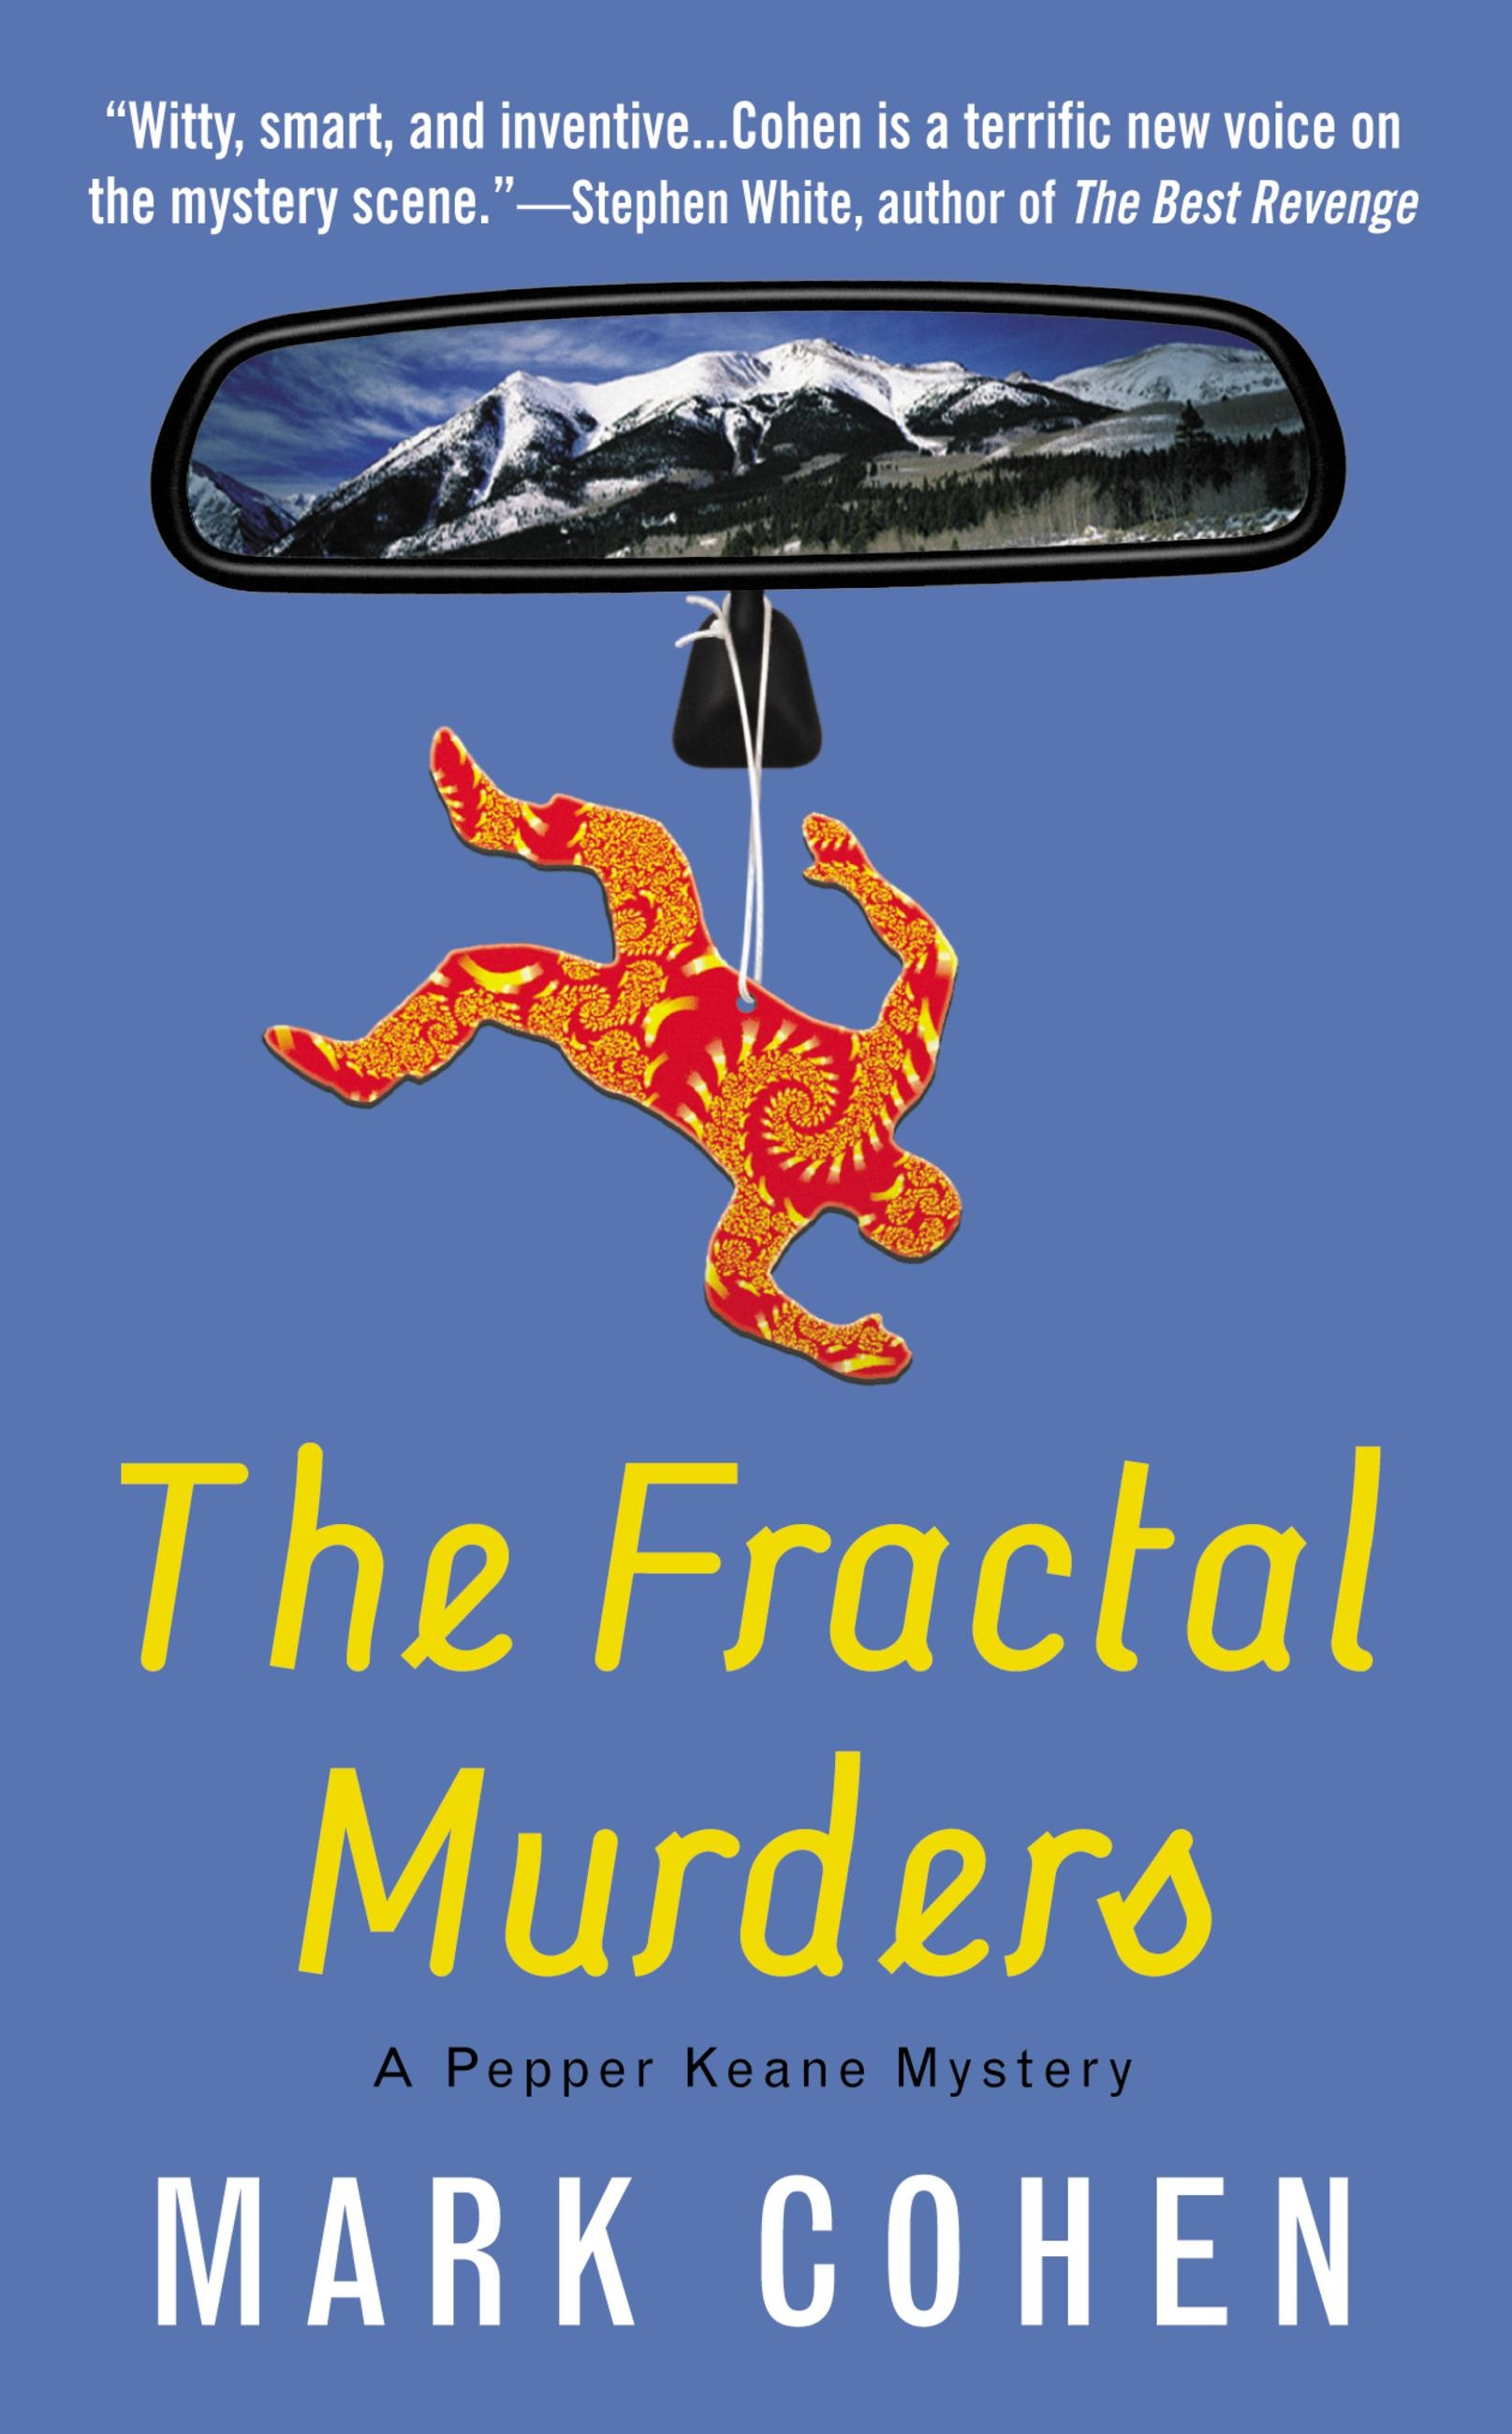 The Fractal Murders